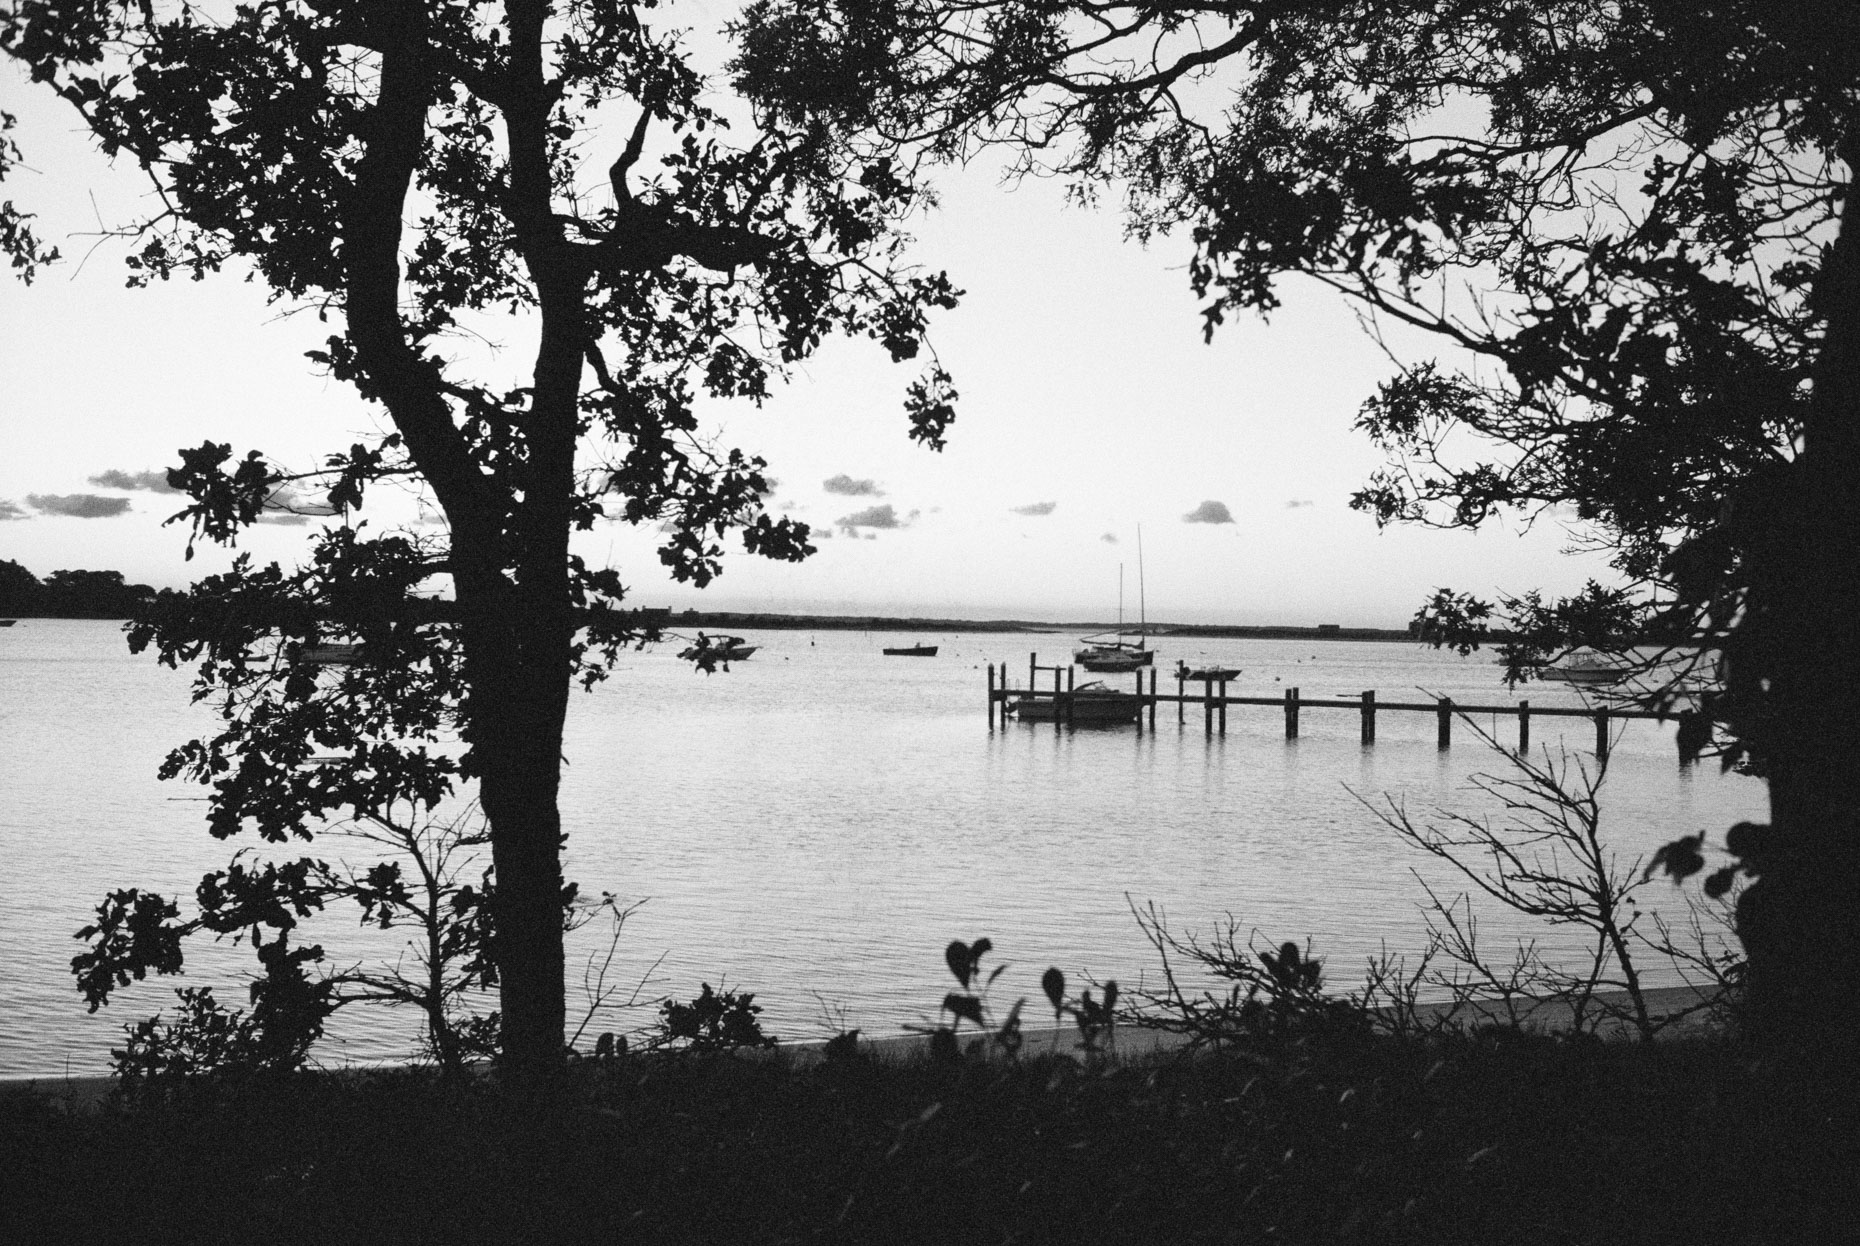 Dock and Trees, Lake Tashmoo, Martha